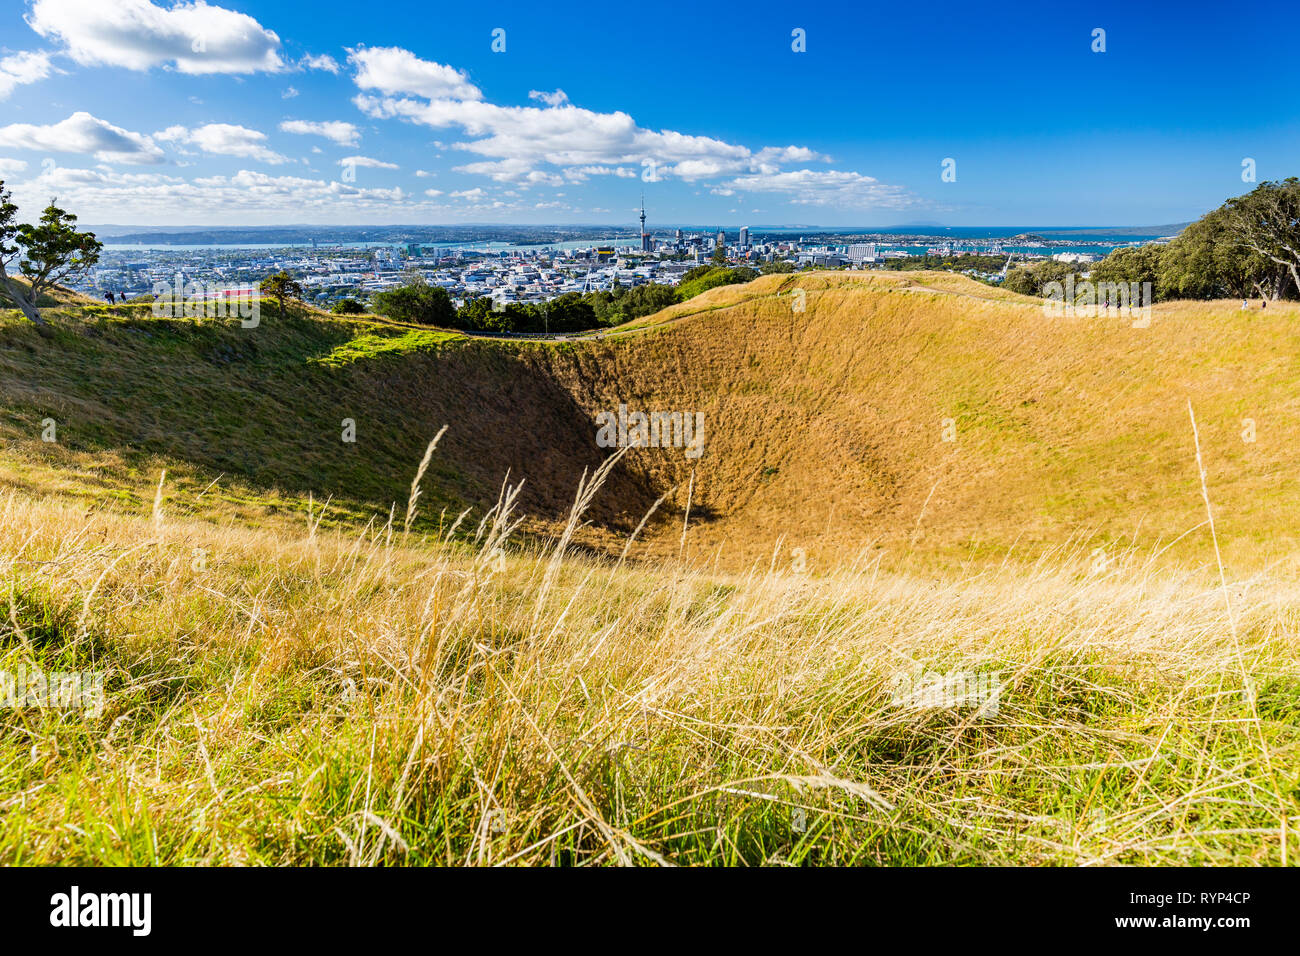 Mt Eden Volcanic Cones and View to Auckland City, New Zealand - Stock Image